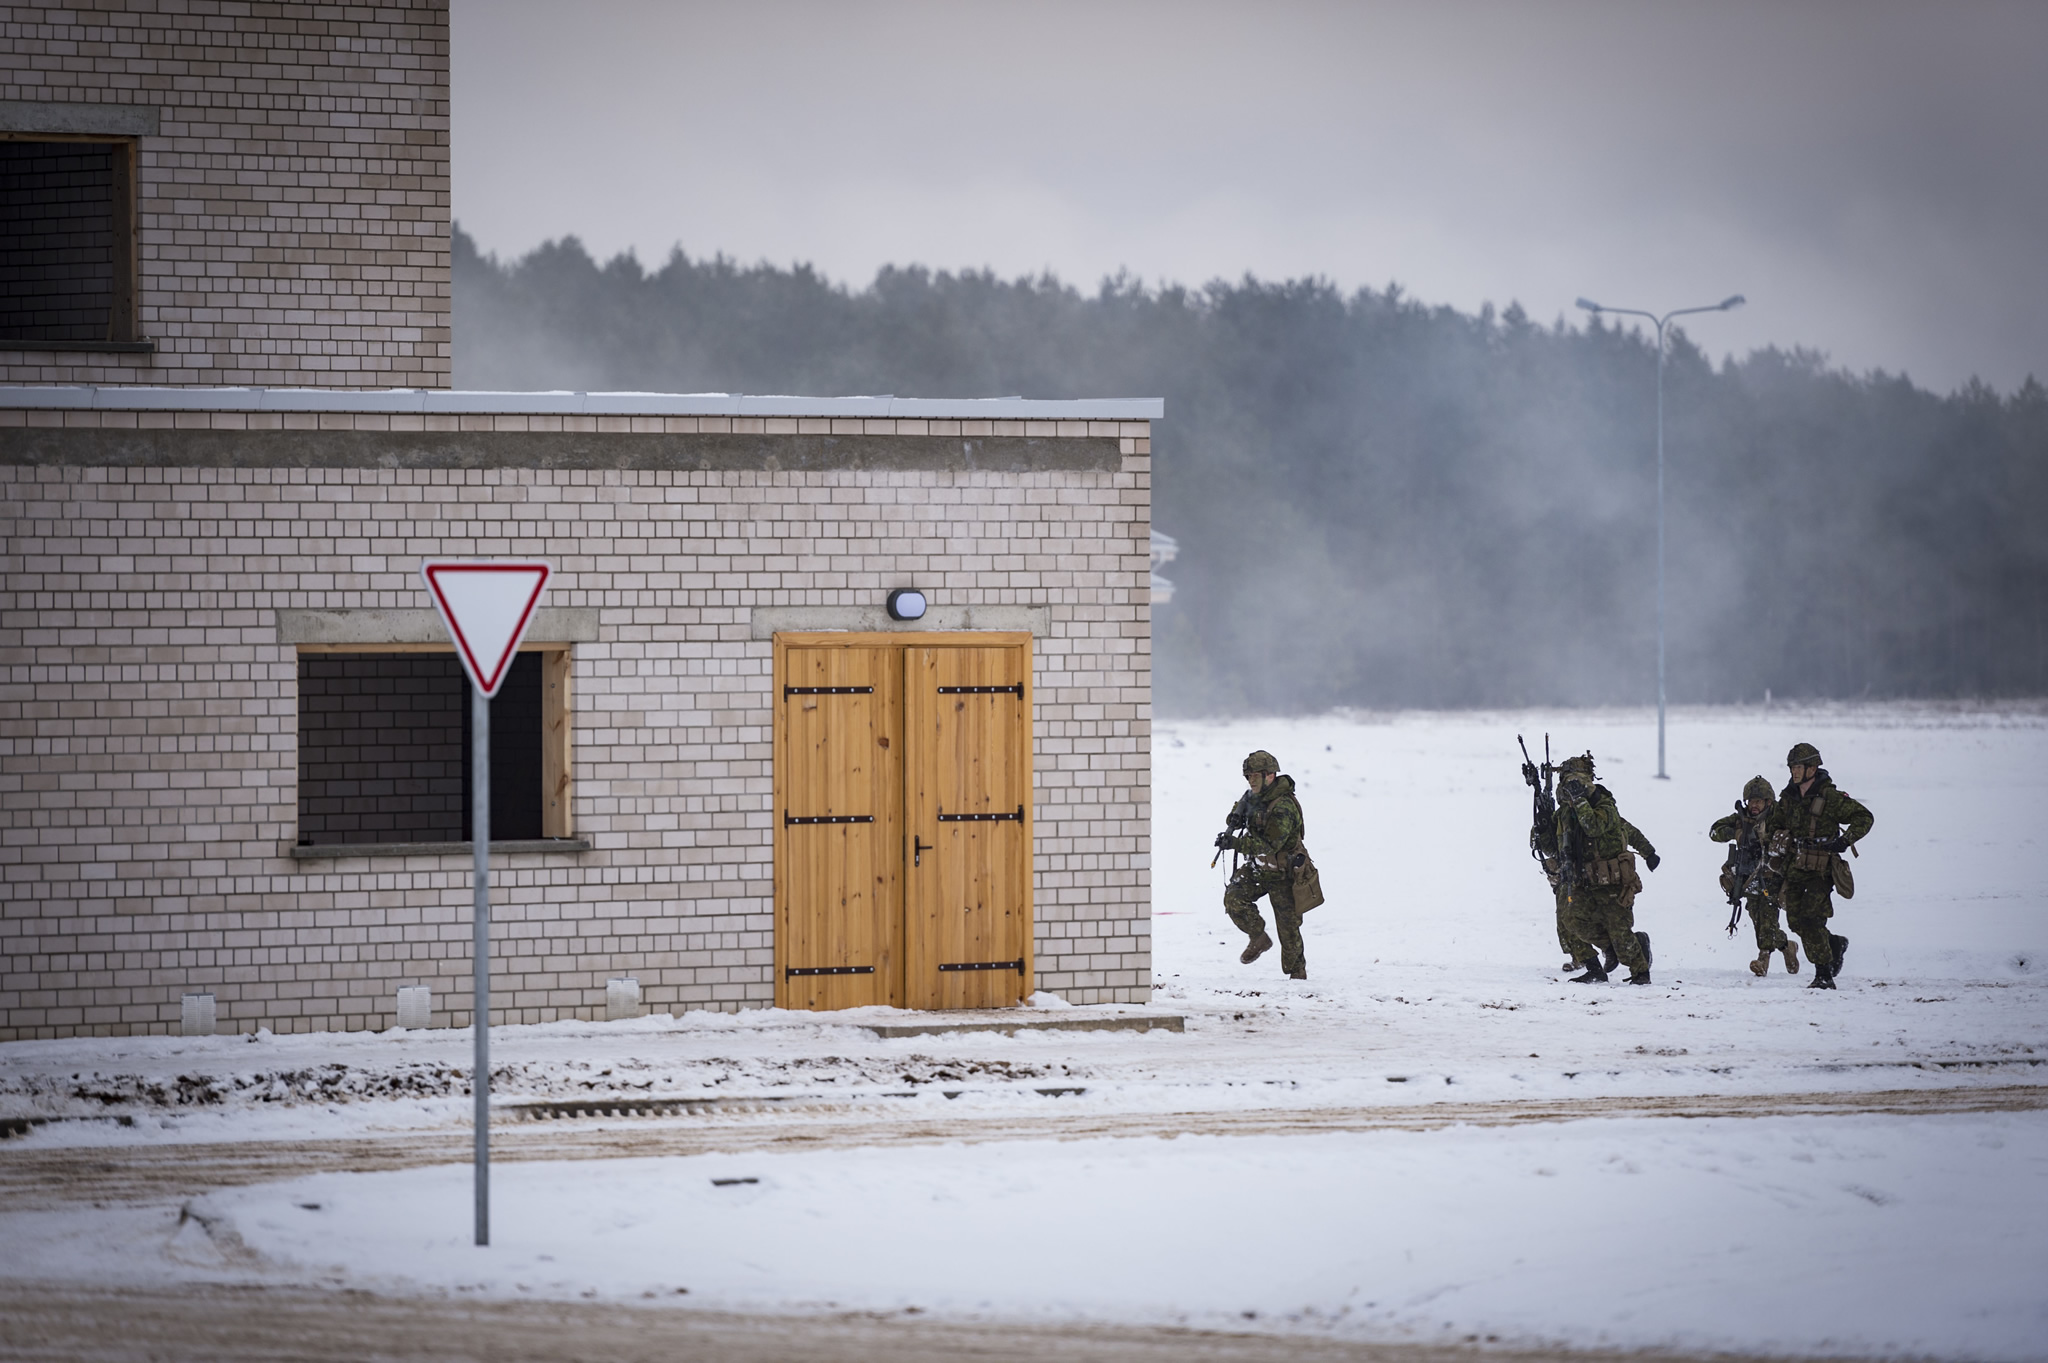 Members of 2 Platoon, Alpha Company, 1 Princess Patricia's Canadian Light Infantry assault a building on Distinguished Visitor day at the end of  Exercise IRON SWORD in Silvestras Zukauskas Pabrade Training Area, Lithuania, during Operation REASSURANCE on December 2, 2016. (Photo: Corporal Jay Ekin, Operation REASSURANCE Land Task Force Imagery Technician)